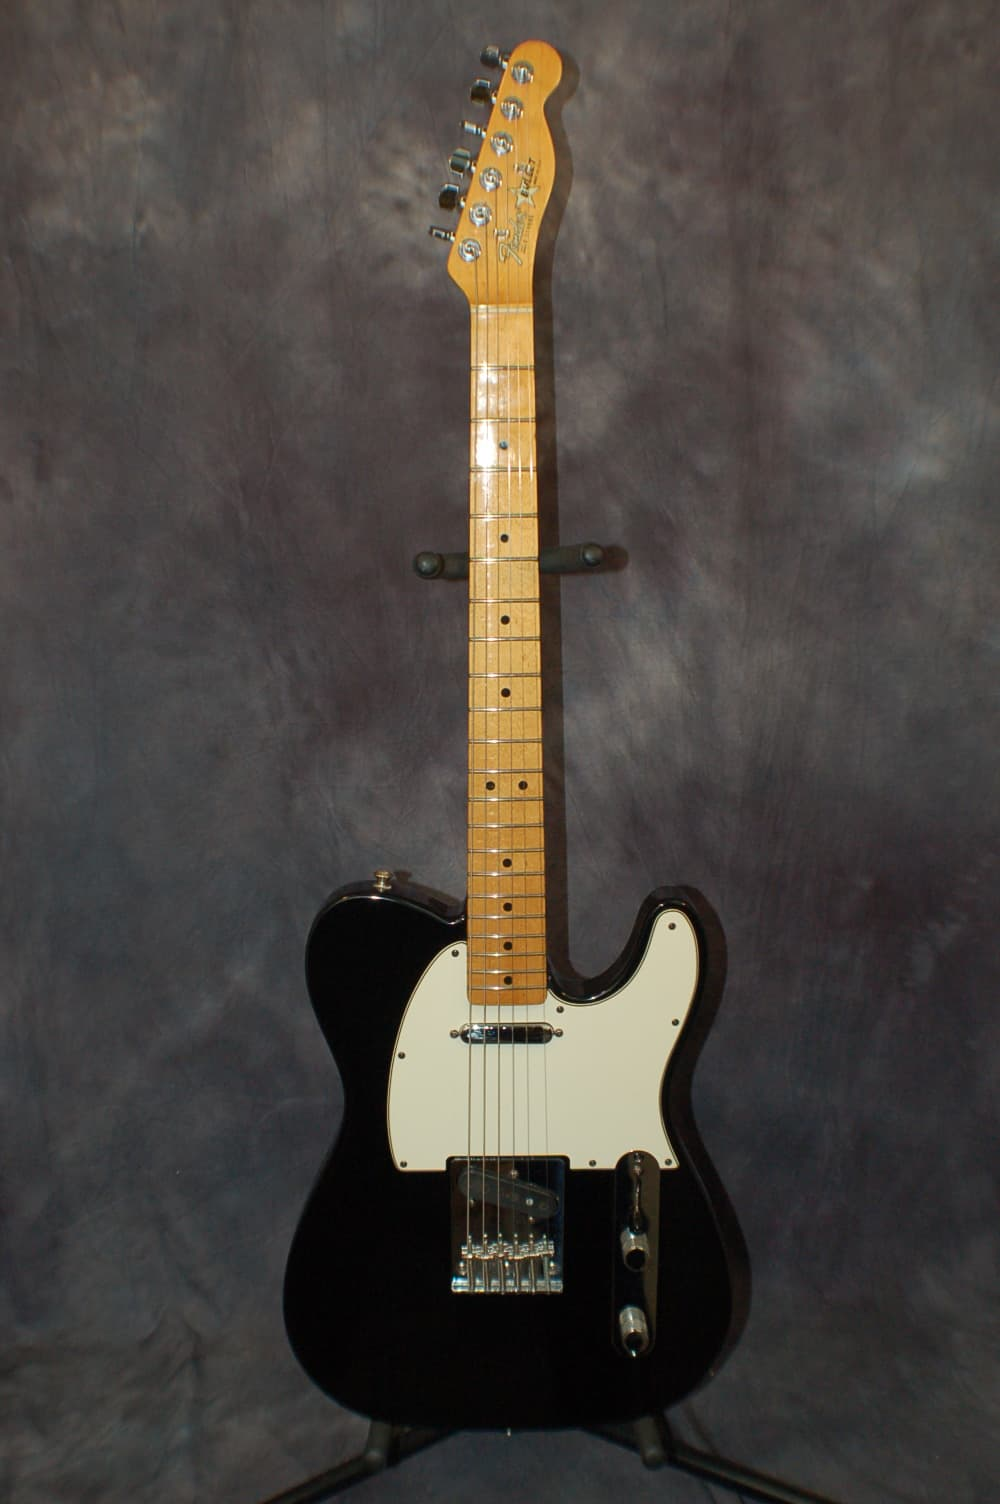 Fender guitars made from to